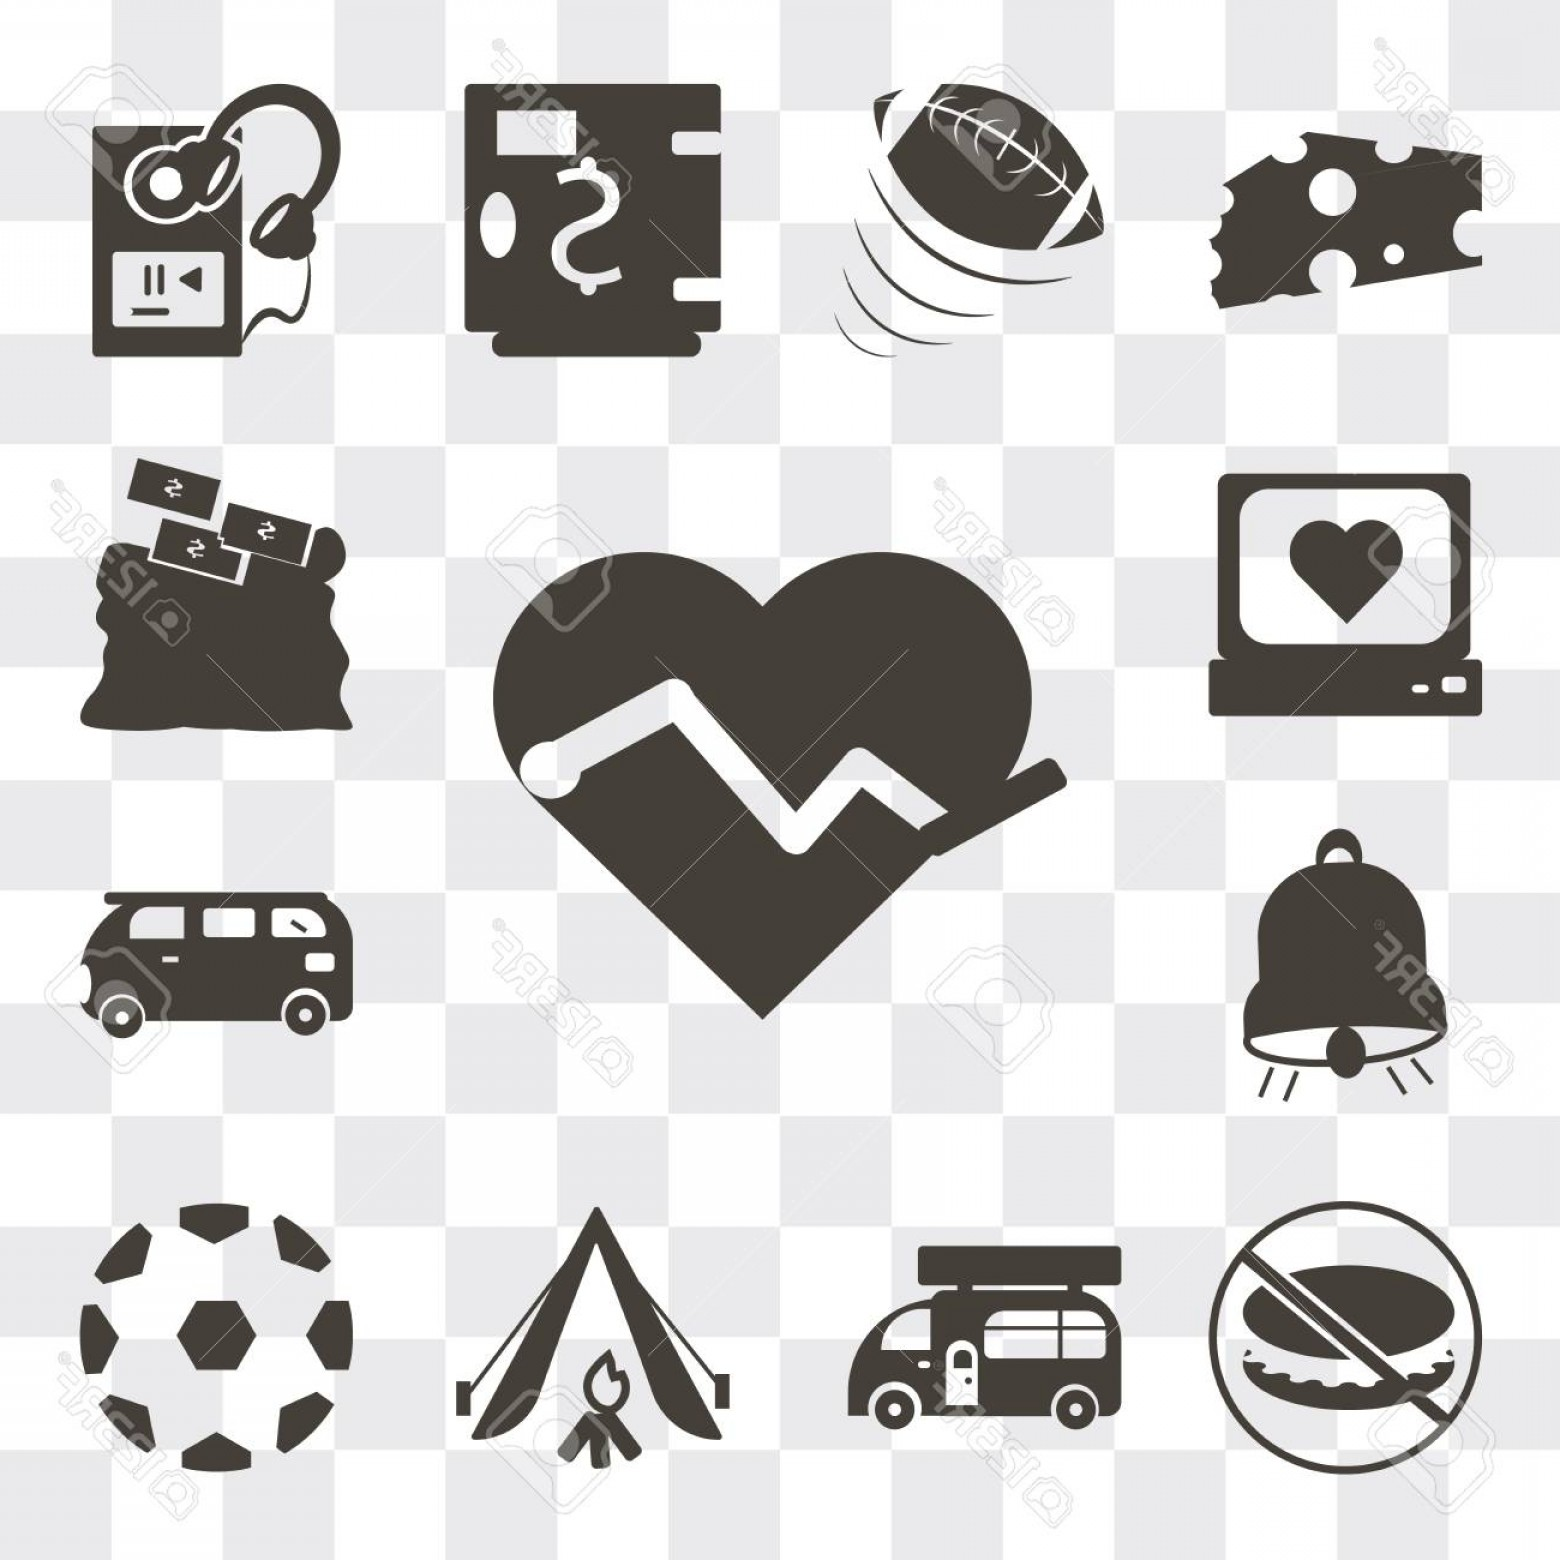 Soccer Ball Heart Beat Vector: Photostock Vector Set Of Simple Editable Icons Such As Electrocardiogram On Heart Shape Soccer Ball With Pentagons